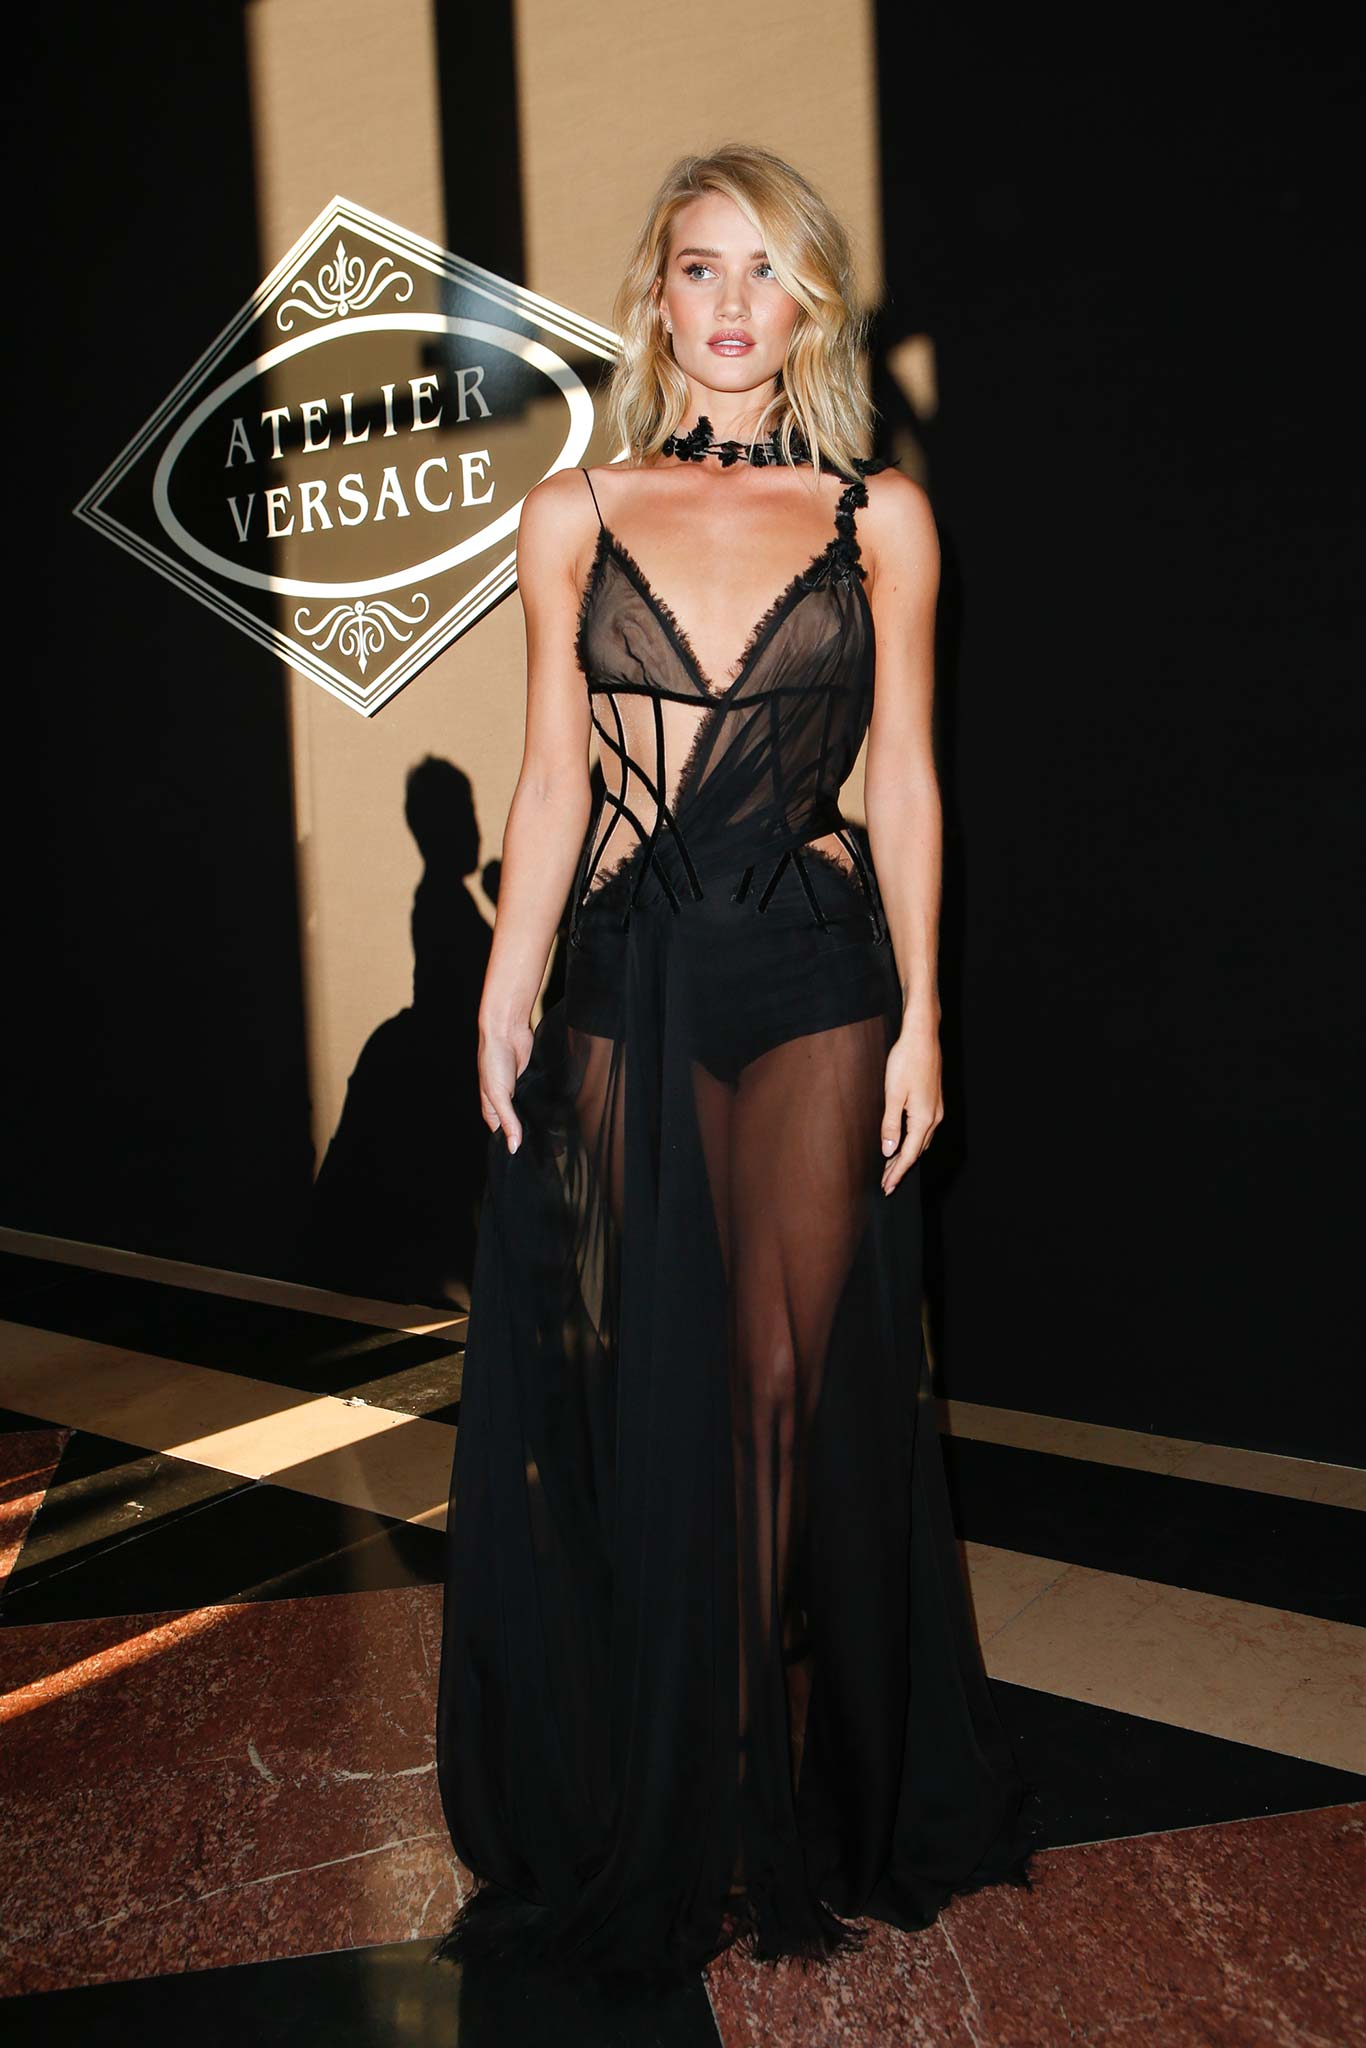 Rosie Huntington-Whiteley-fall-2015-couture/atelier-versace/front-row